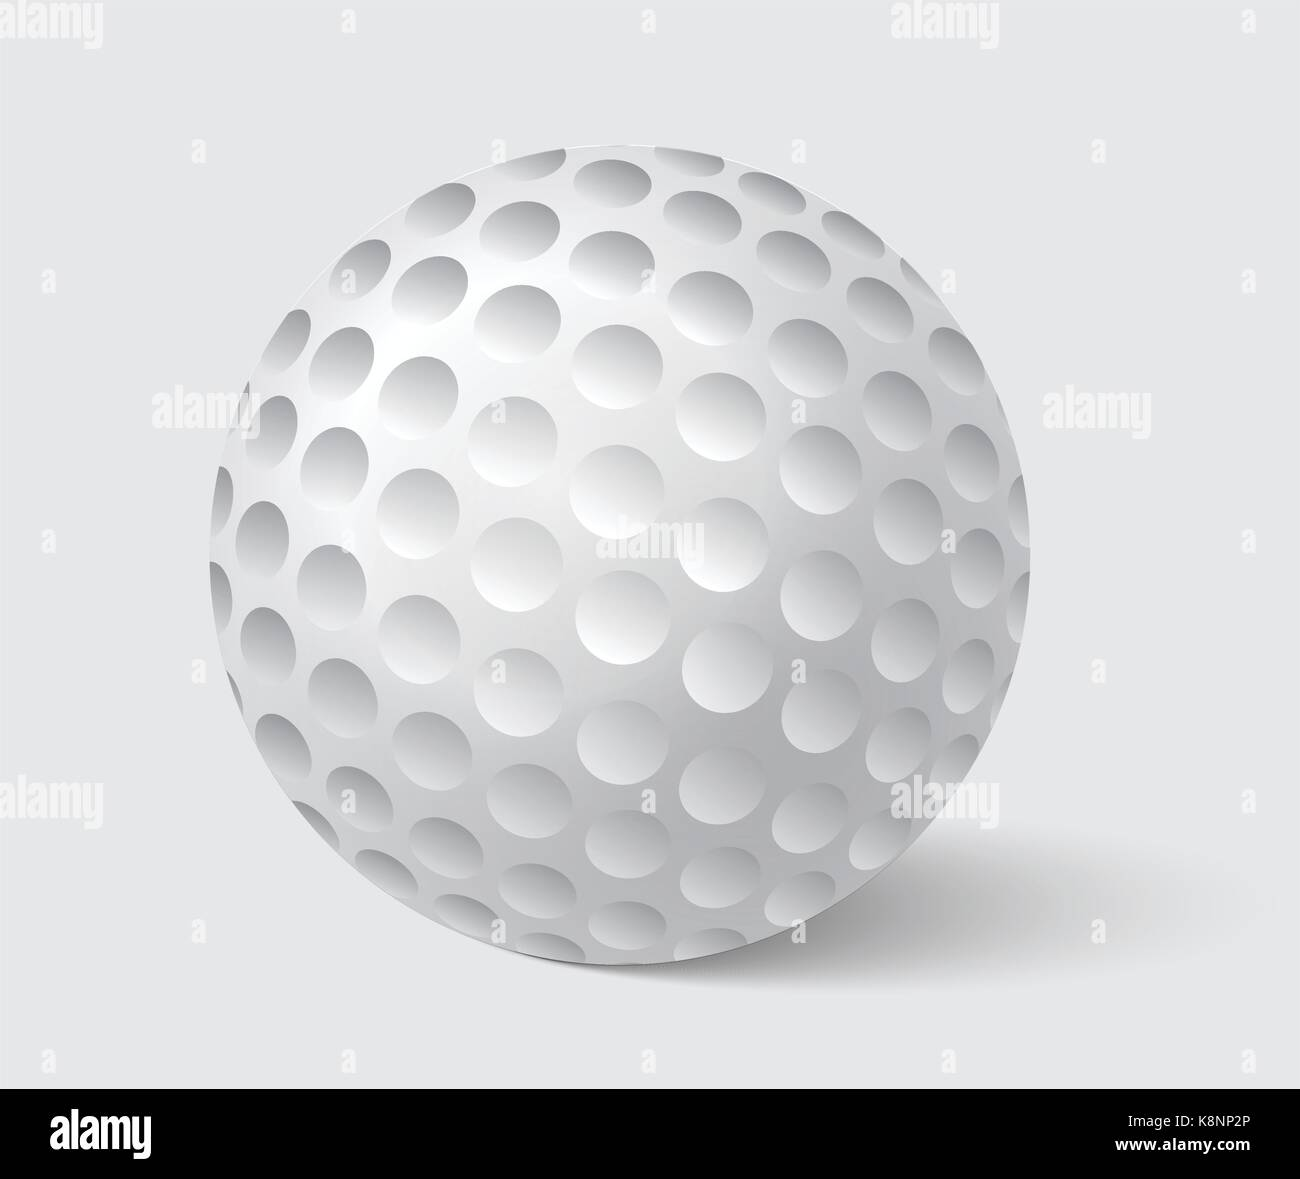 Golfball realistic vector. Image of single golf equipment, ball illustration isolated on grey background. - Stock Image